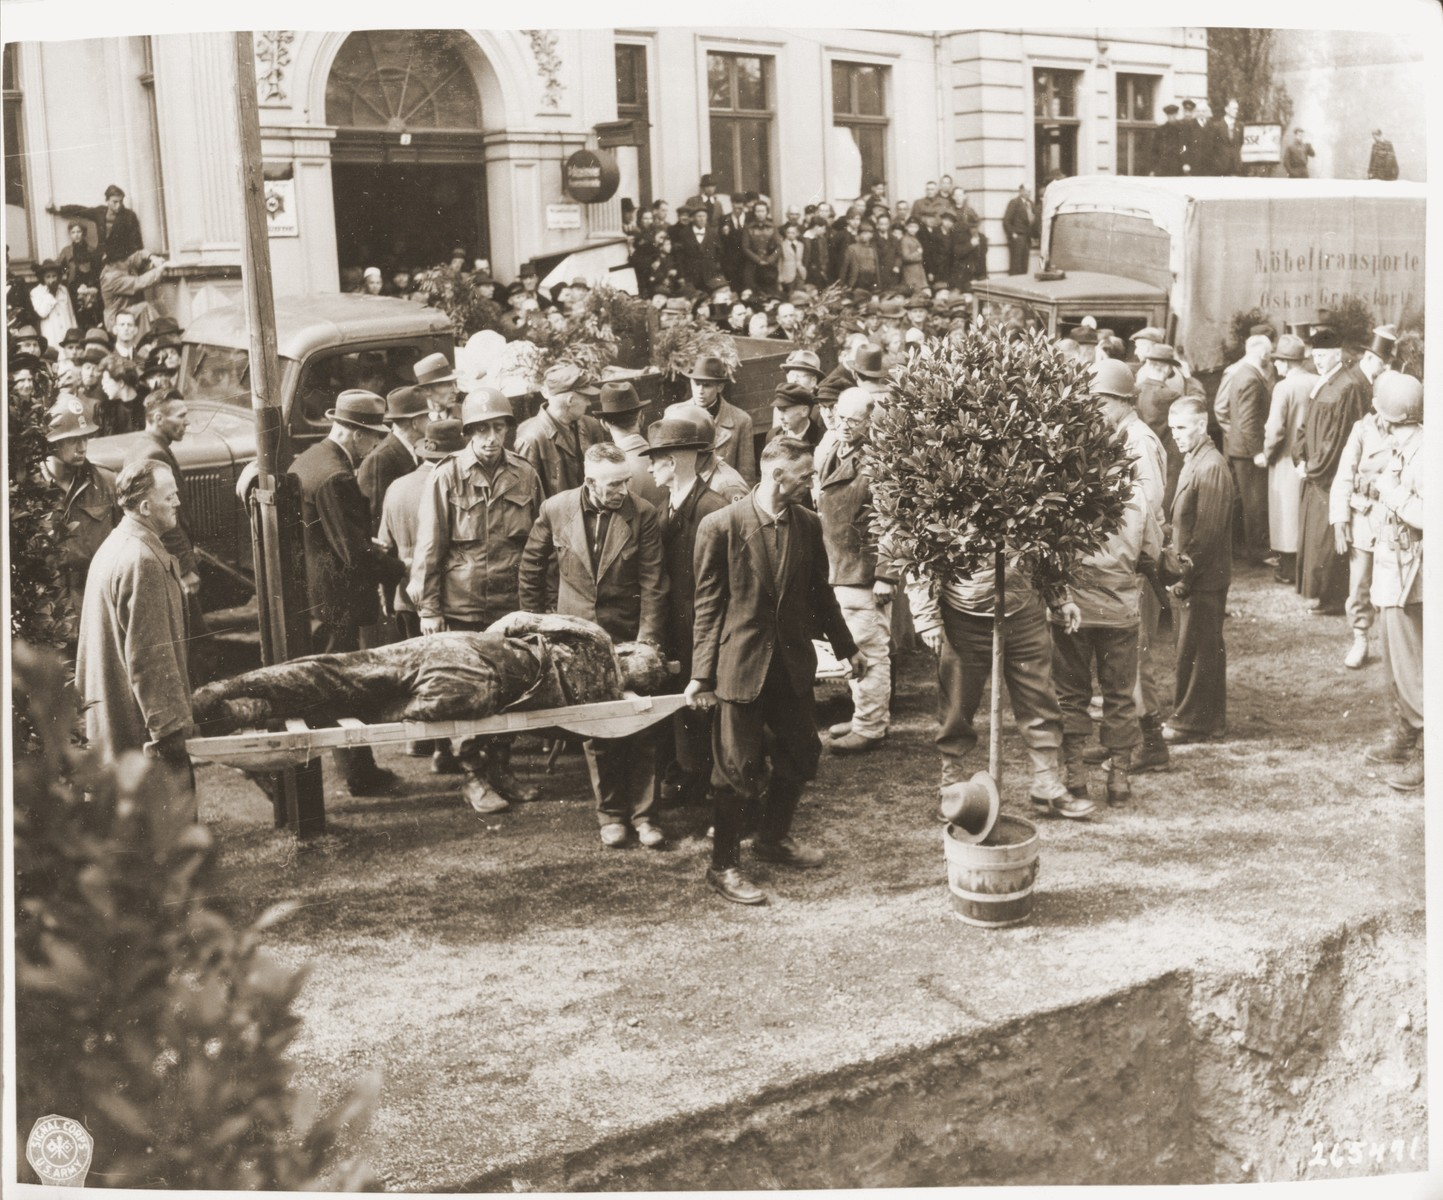 Under the supervision of American soldiers, German civilians bury the bodies of 71 political prisoners, exhumed from a mass grave near Solingen-Ohligs, in front of the city hall.  The victims, most of whom were taken from Luettringhausen prison, were shot and buried by the Gestapo following orders to eliminate all Reich enemies just before the end of the war.